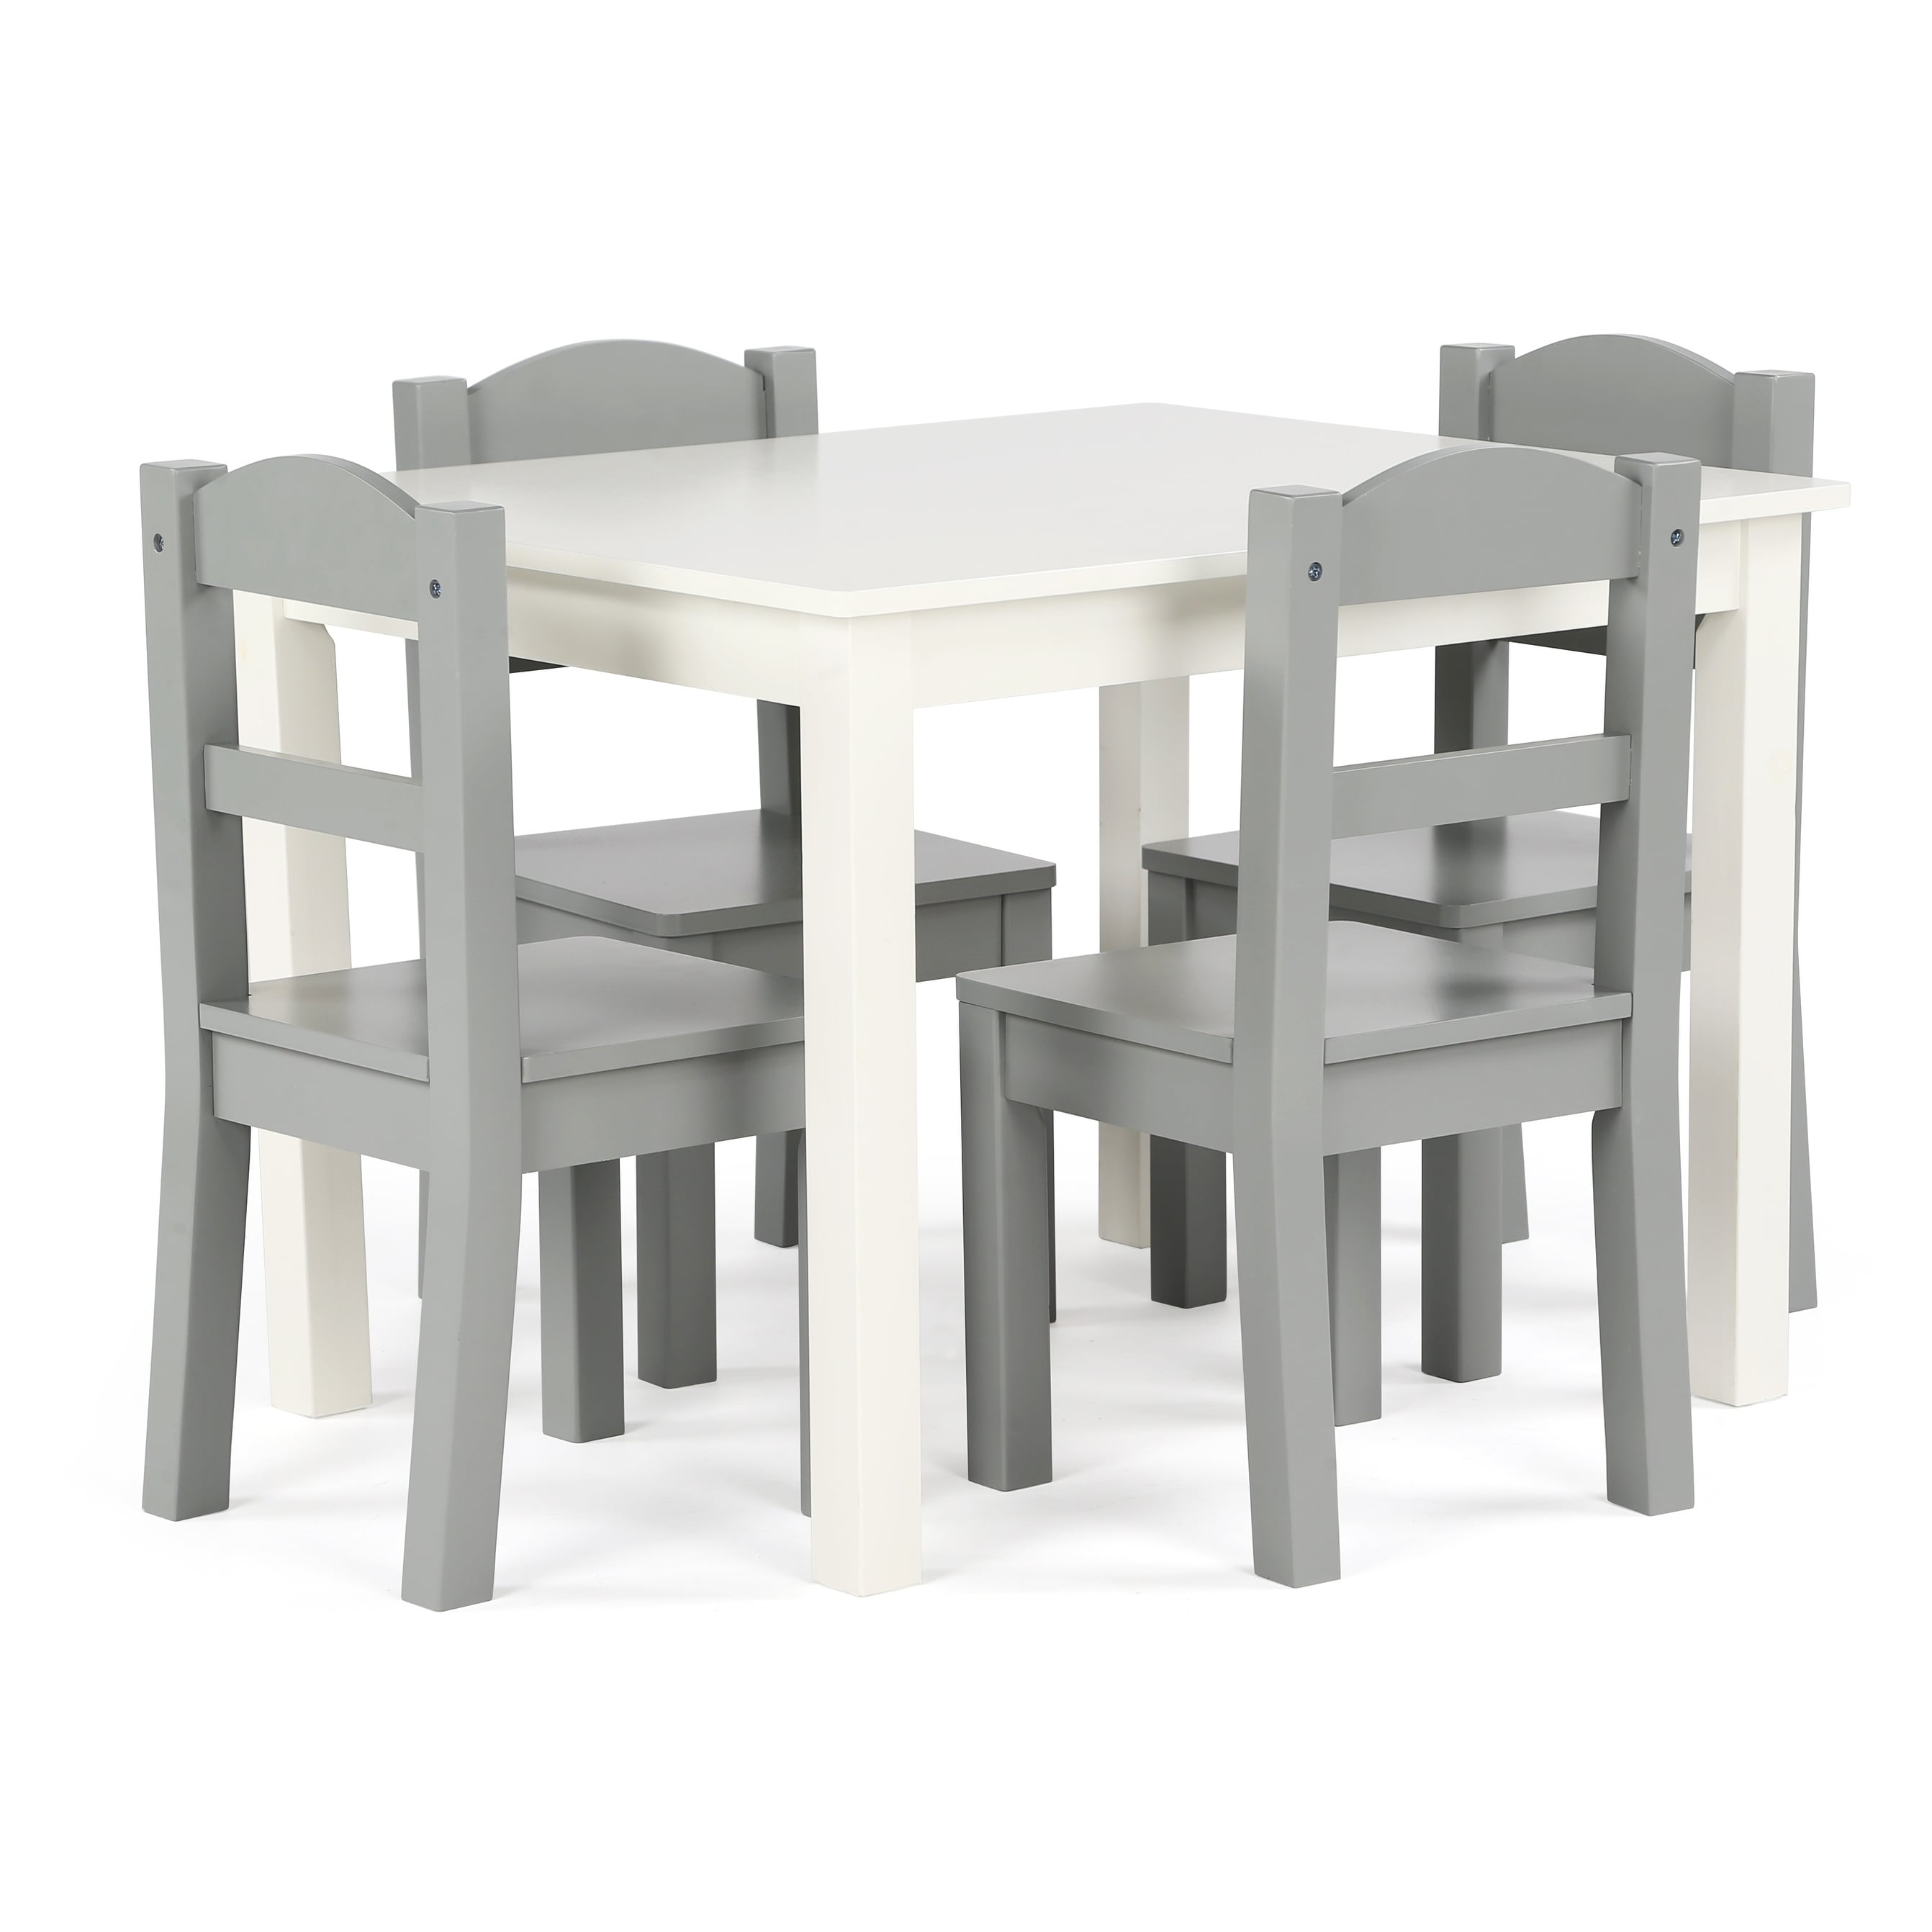 Kids Wood Table And Chairs Springfield 5 Piece Wood Kids Table Chairs Set In White Grey